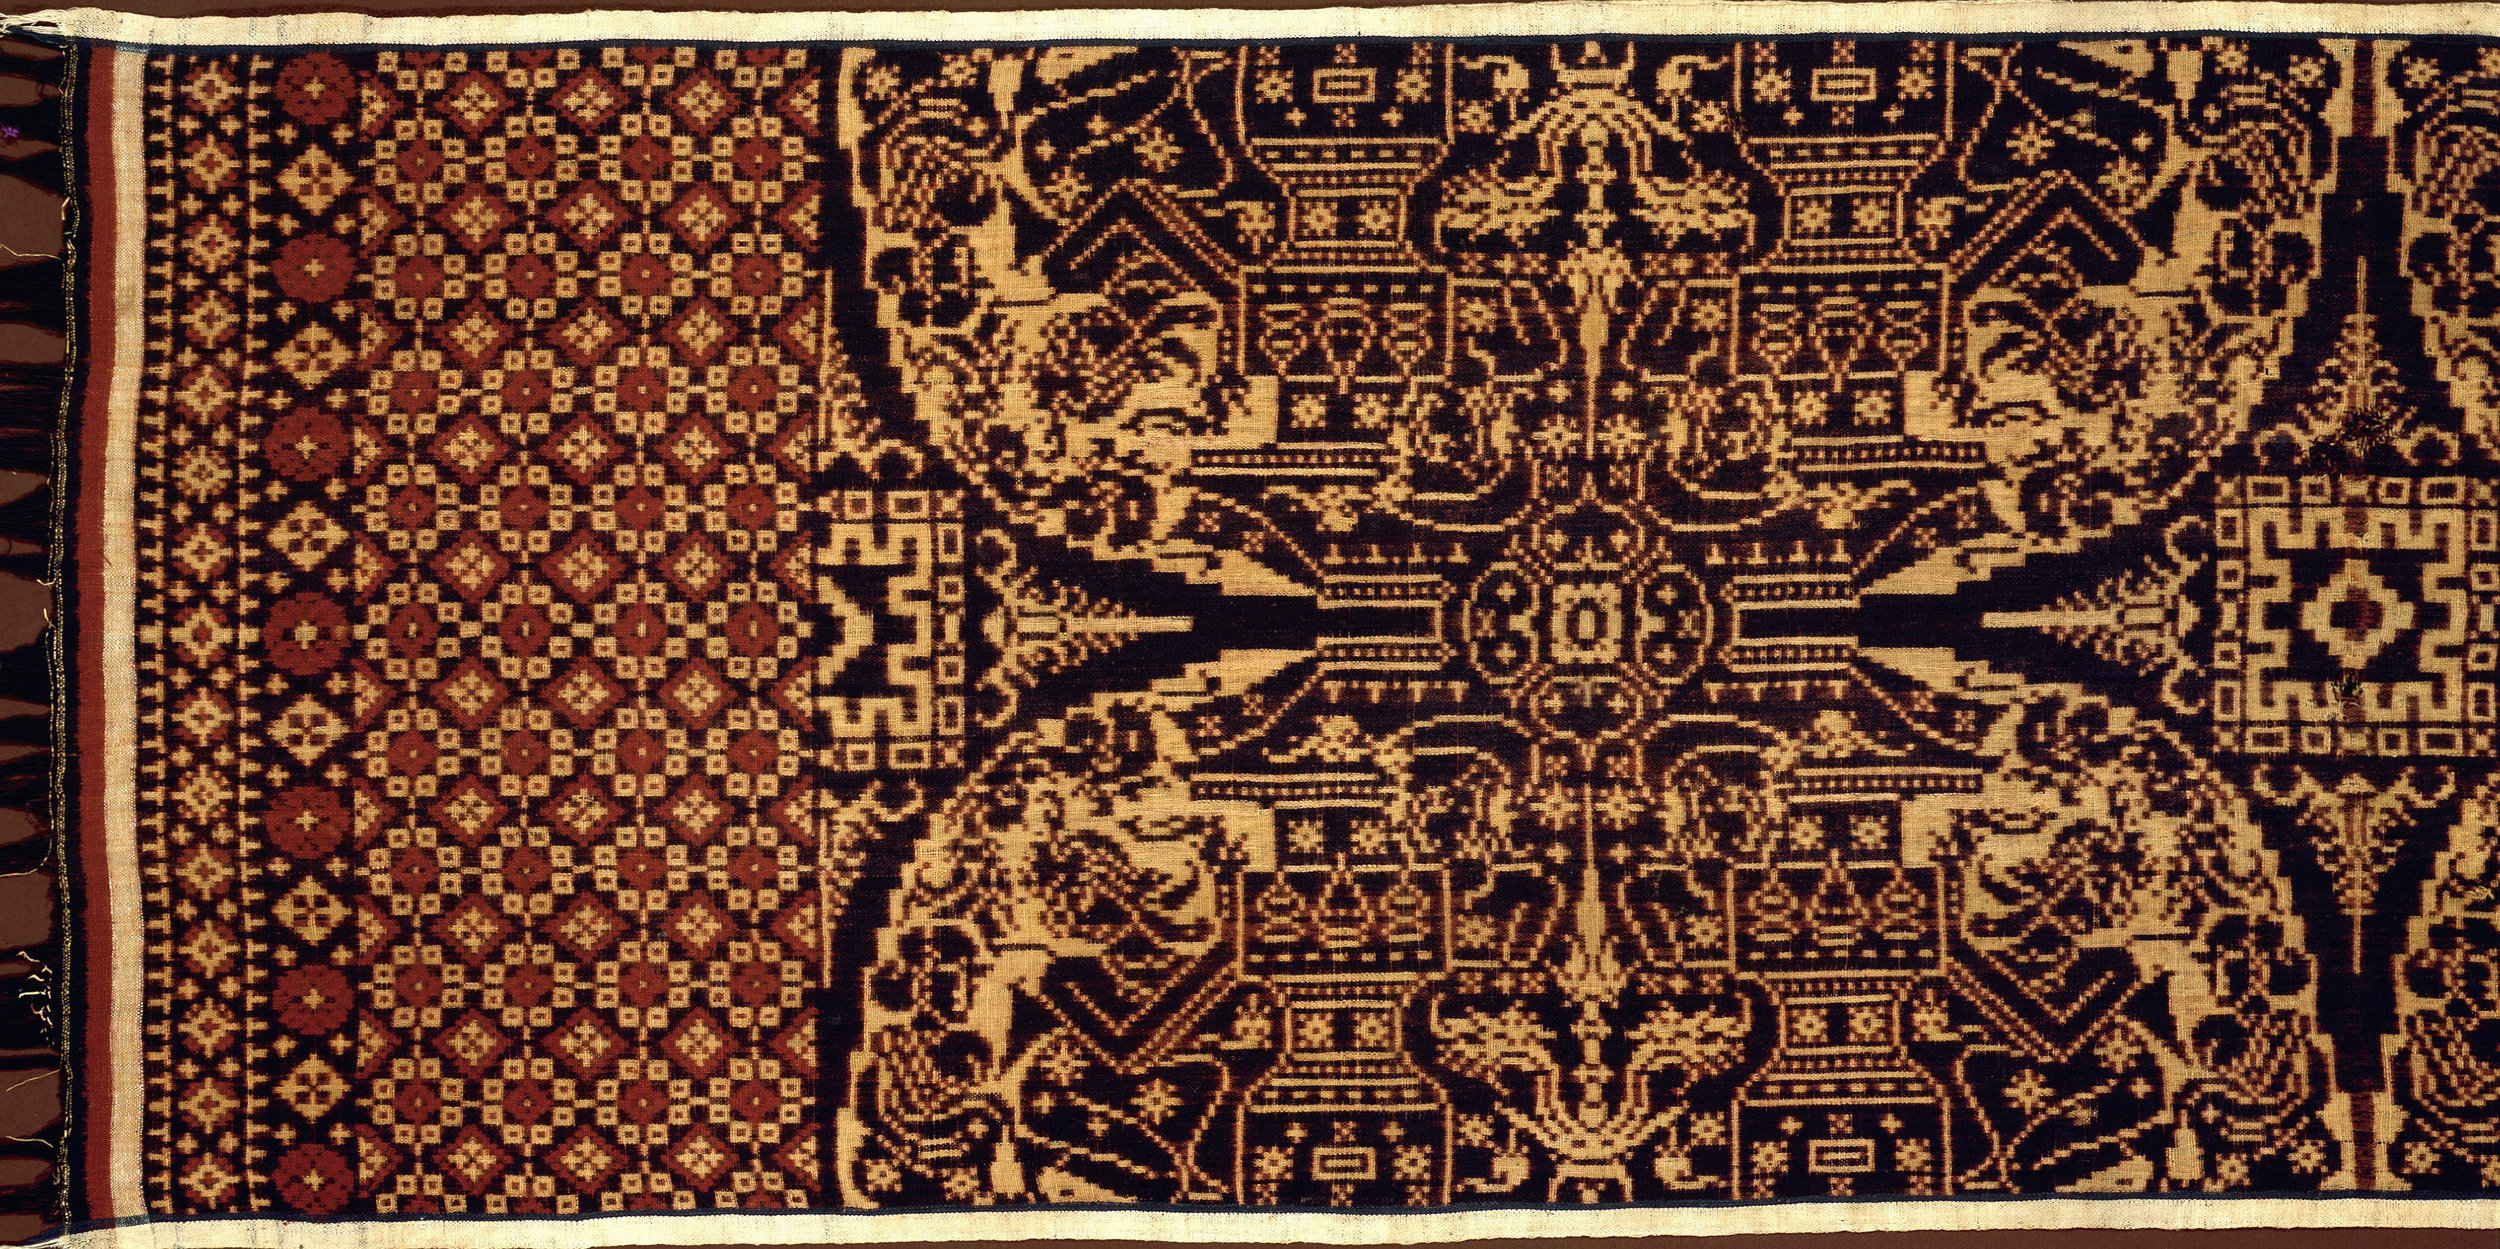 Geringsing, double ikat. The design shows in its offering scenes specific Balinese temple architecture in great detail. Offering vessels are clearly discernible. Country of Origin: Indonesia. Culture: Bali. Date/Period: 20th C. Place of Origin: Tenganan Pageringsingan. Material Size: Cotton. Credit Line: Werner Forman Archive/ Museum fur Volkerkunde, Basel.